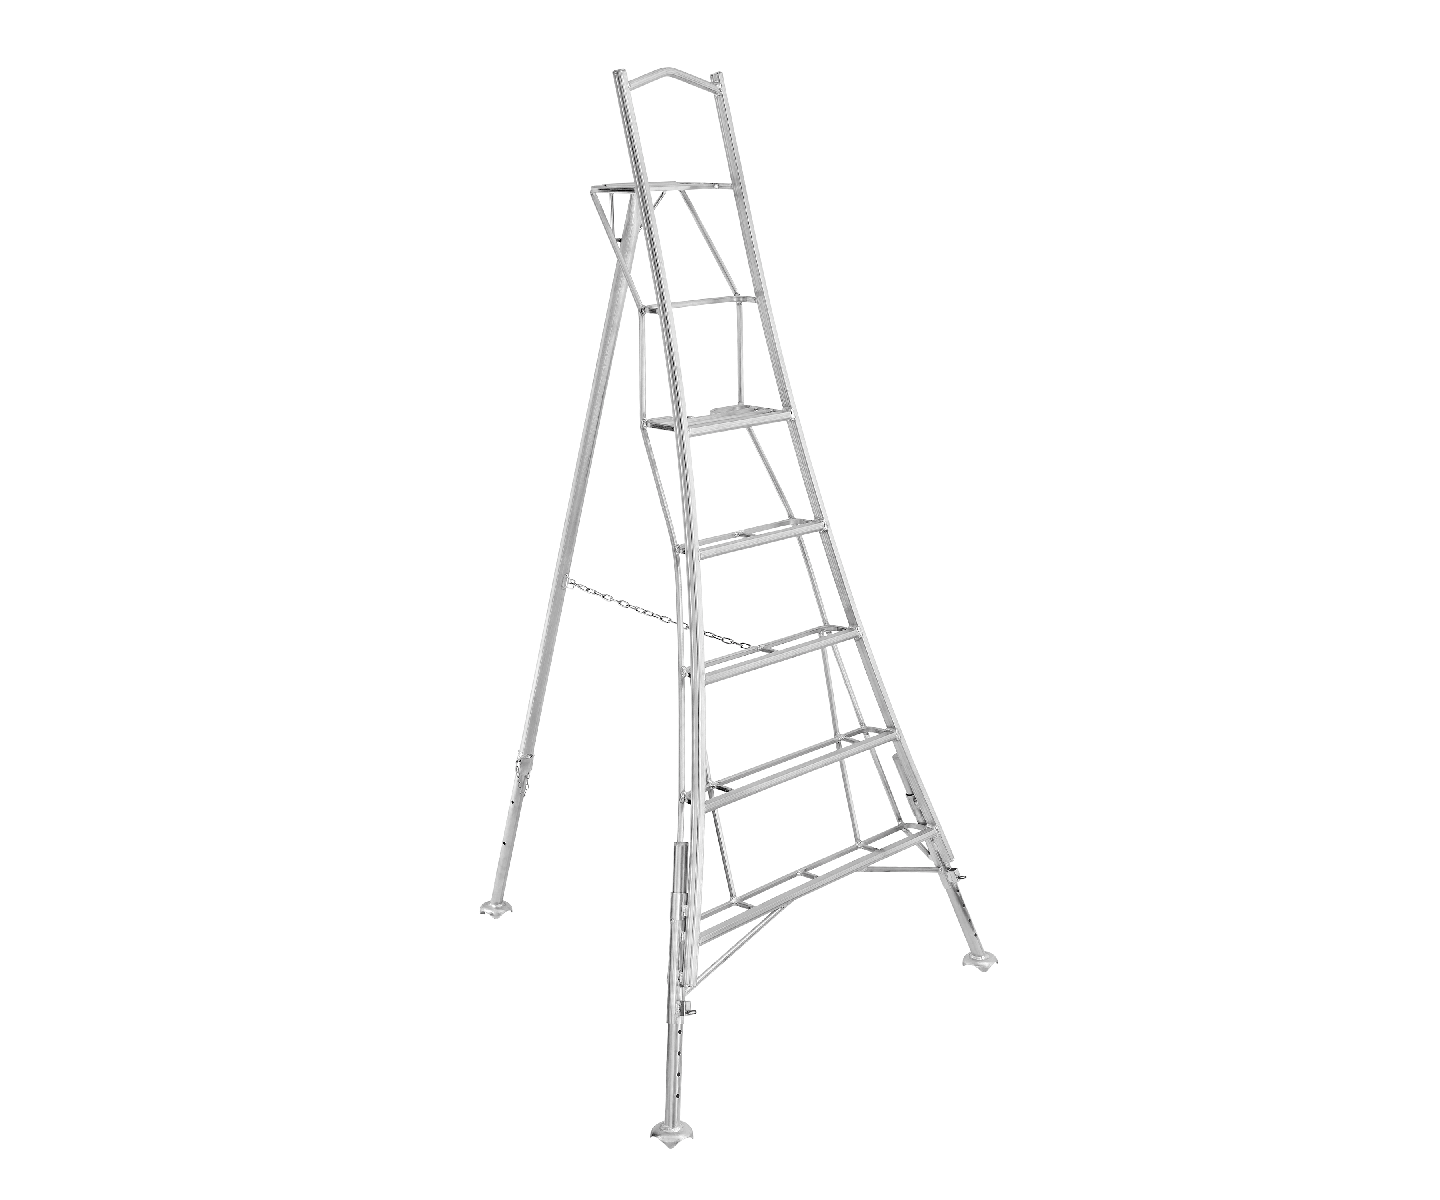 Hendon HPM 3 Leg Adjusting Tripod Ladder 8FT/2.4M